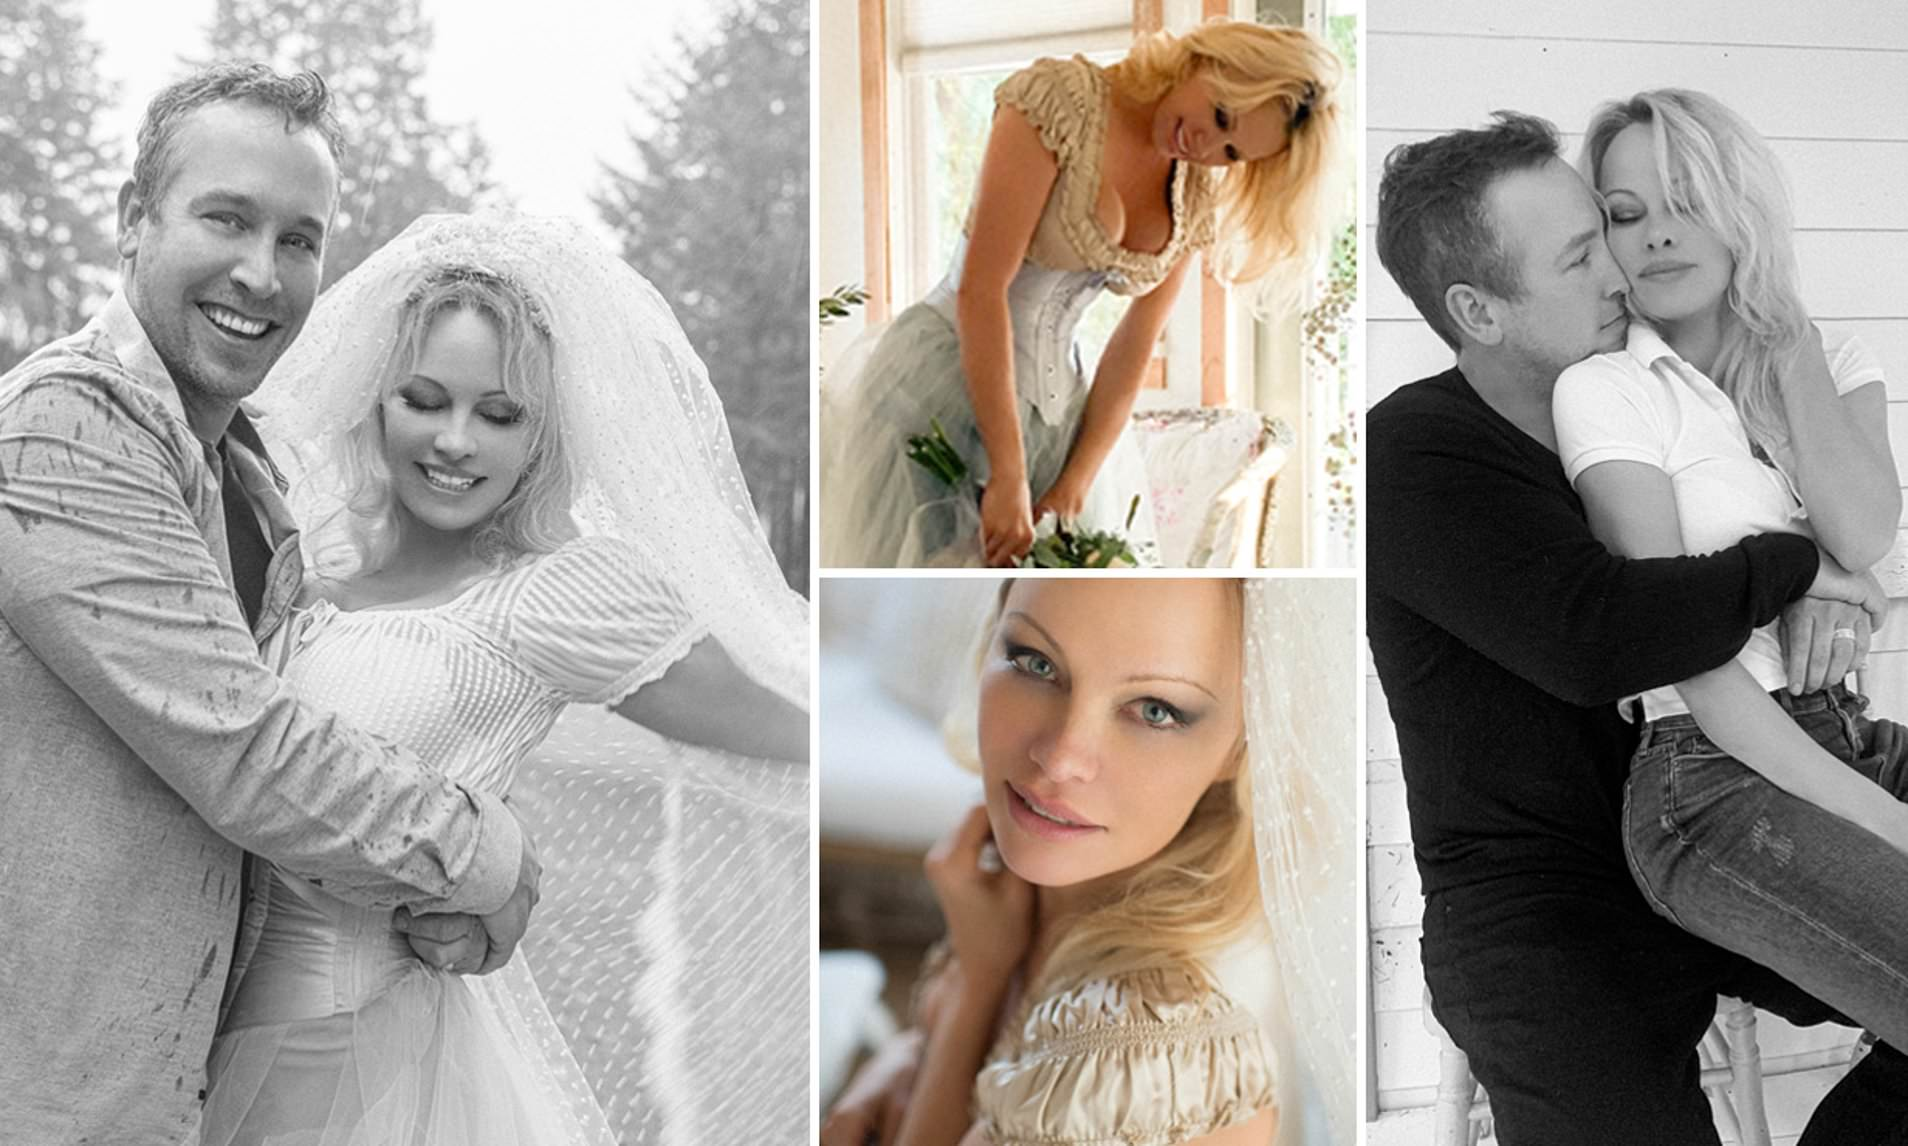 pamela-anderson-and-dan-hayhursts-wedding-stylist-tells-all-about-their-amazing-relationship